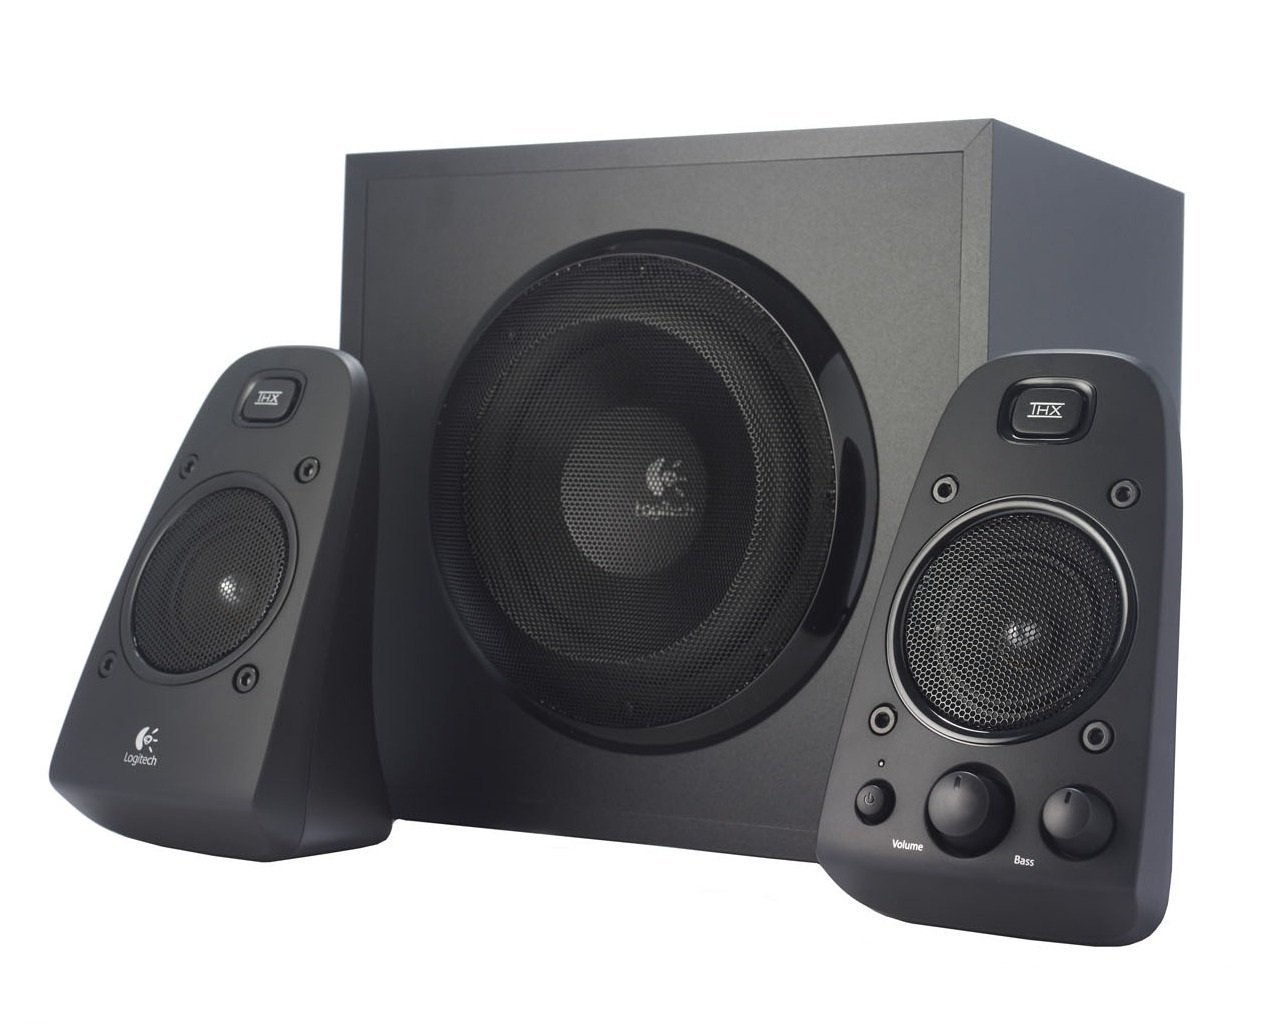 Logitech Soundsystem amazon